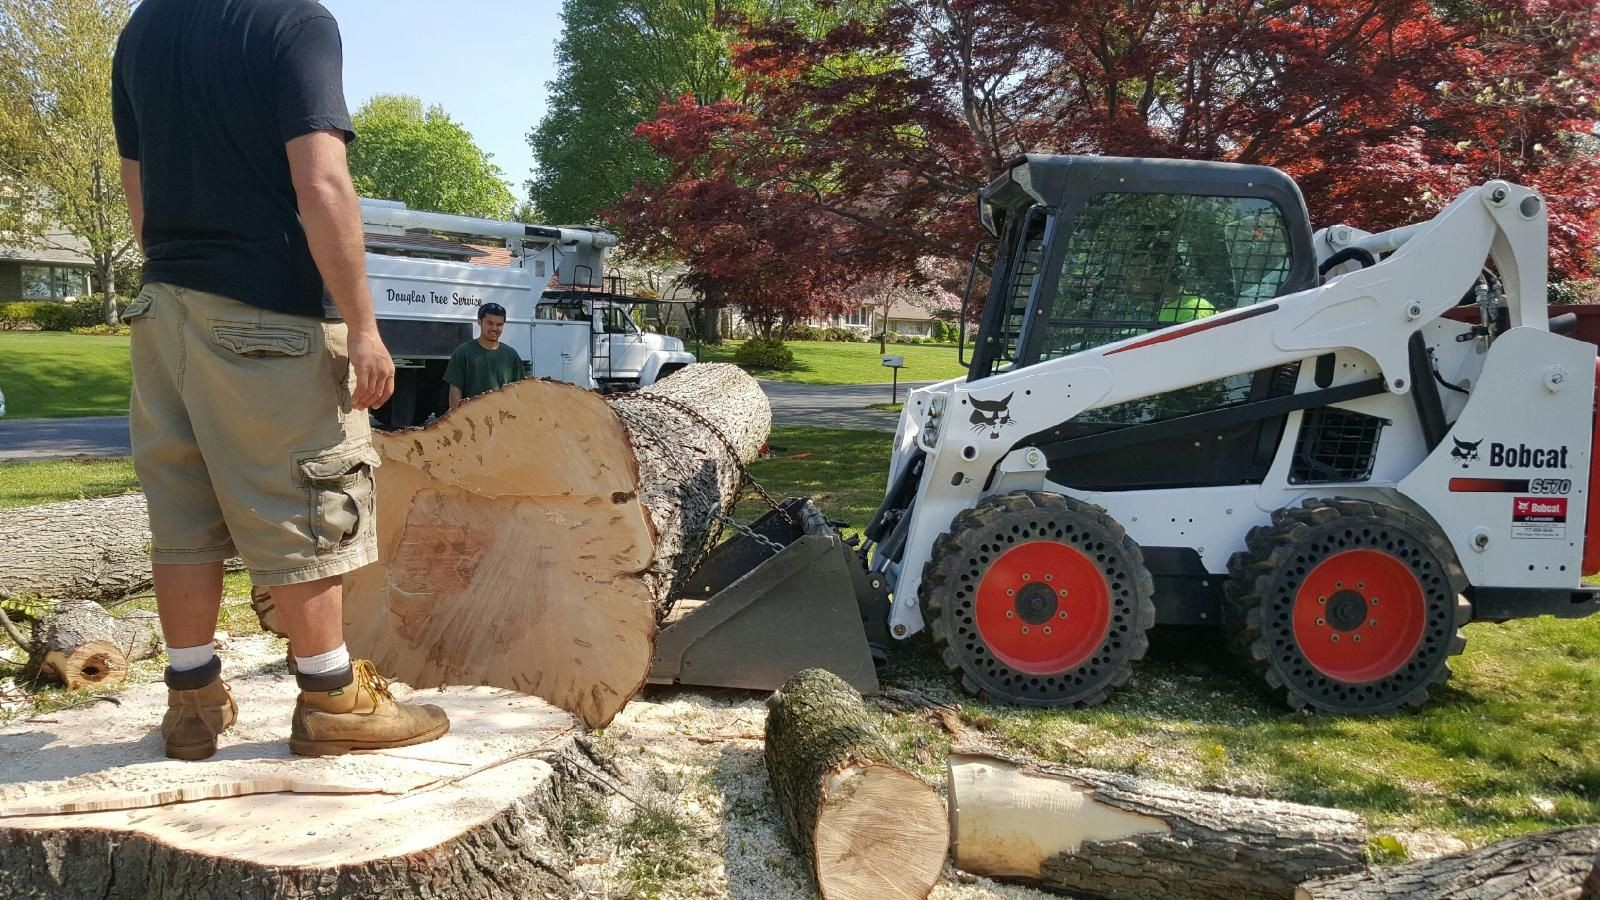 Pleasant Garden-Greensboro Tree Trimming and Stump Grinding Services-We Offer Tree Trimming Services, Tree Removal, Tree Pruning, Tree Cutting, Residential and Commercial Tree Trimming Services, Storm Damage, Emergency Tree Removal, Land Clearing, Tree Companies, Tree Care Service, Stump Grinding, and we're the Best Tree Trimming Company Near You Guaranteed!